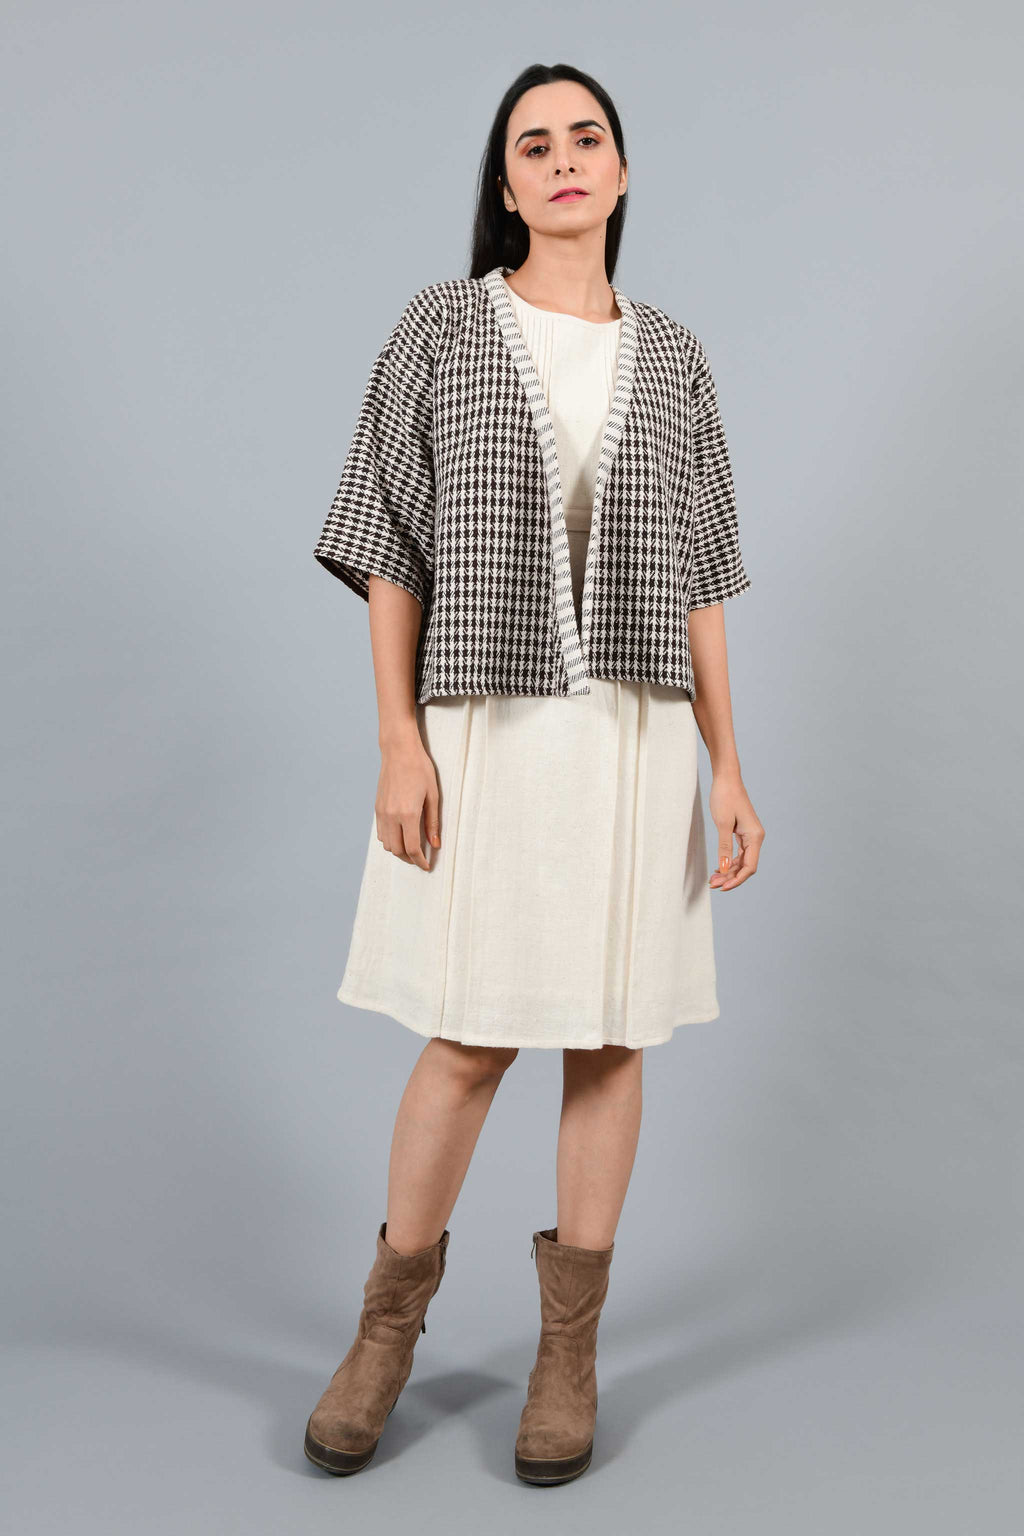 Front pose of an Indian Womenswear female model wearing Brown and off-white chequred handspun and handwoven free size shrug Jacket over an off-white cashmere cotton dress by Cotton Rack.